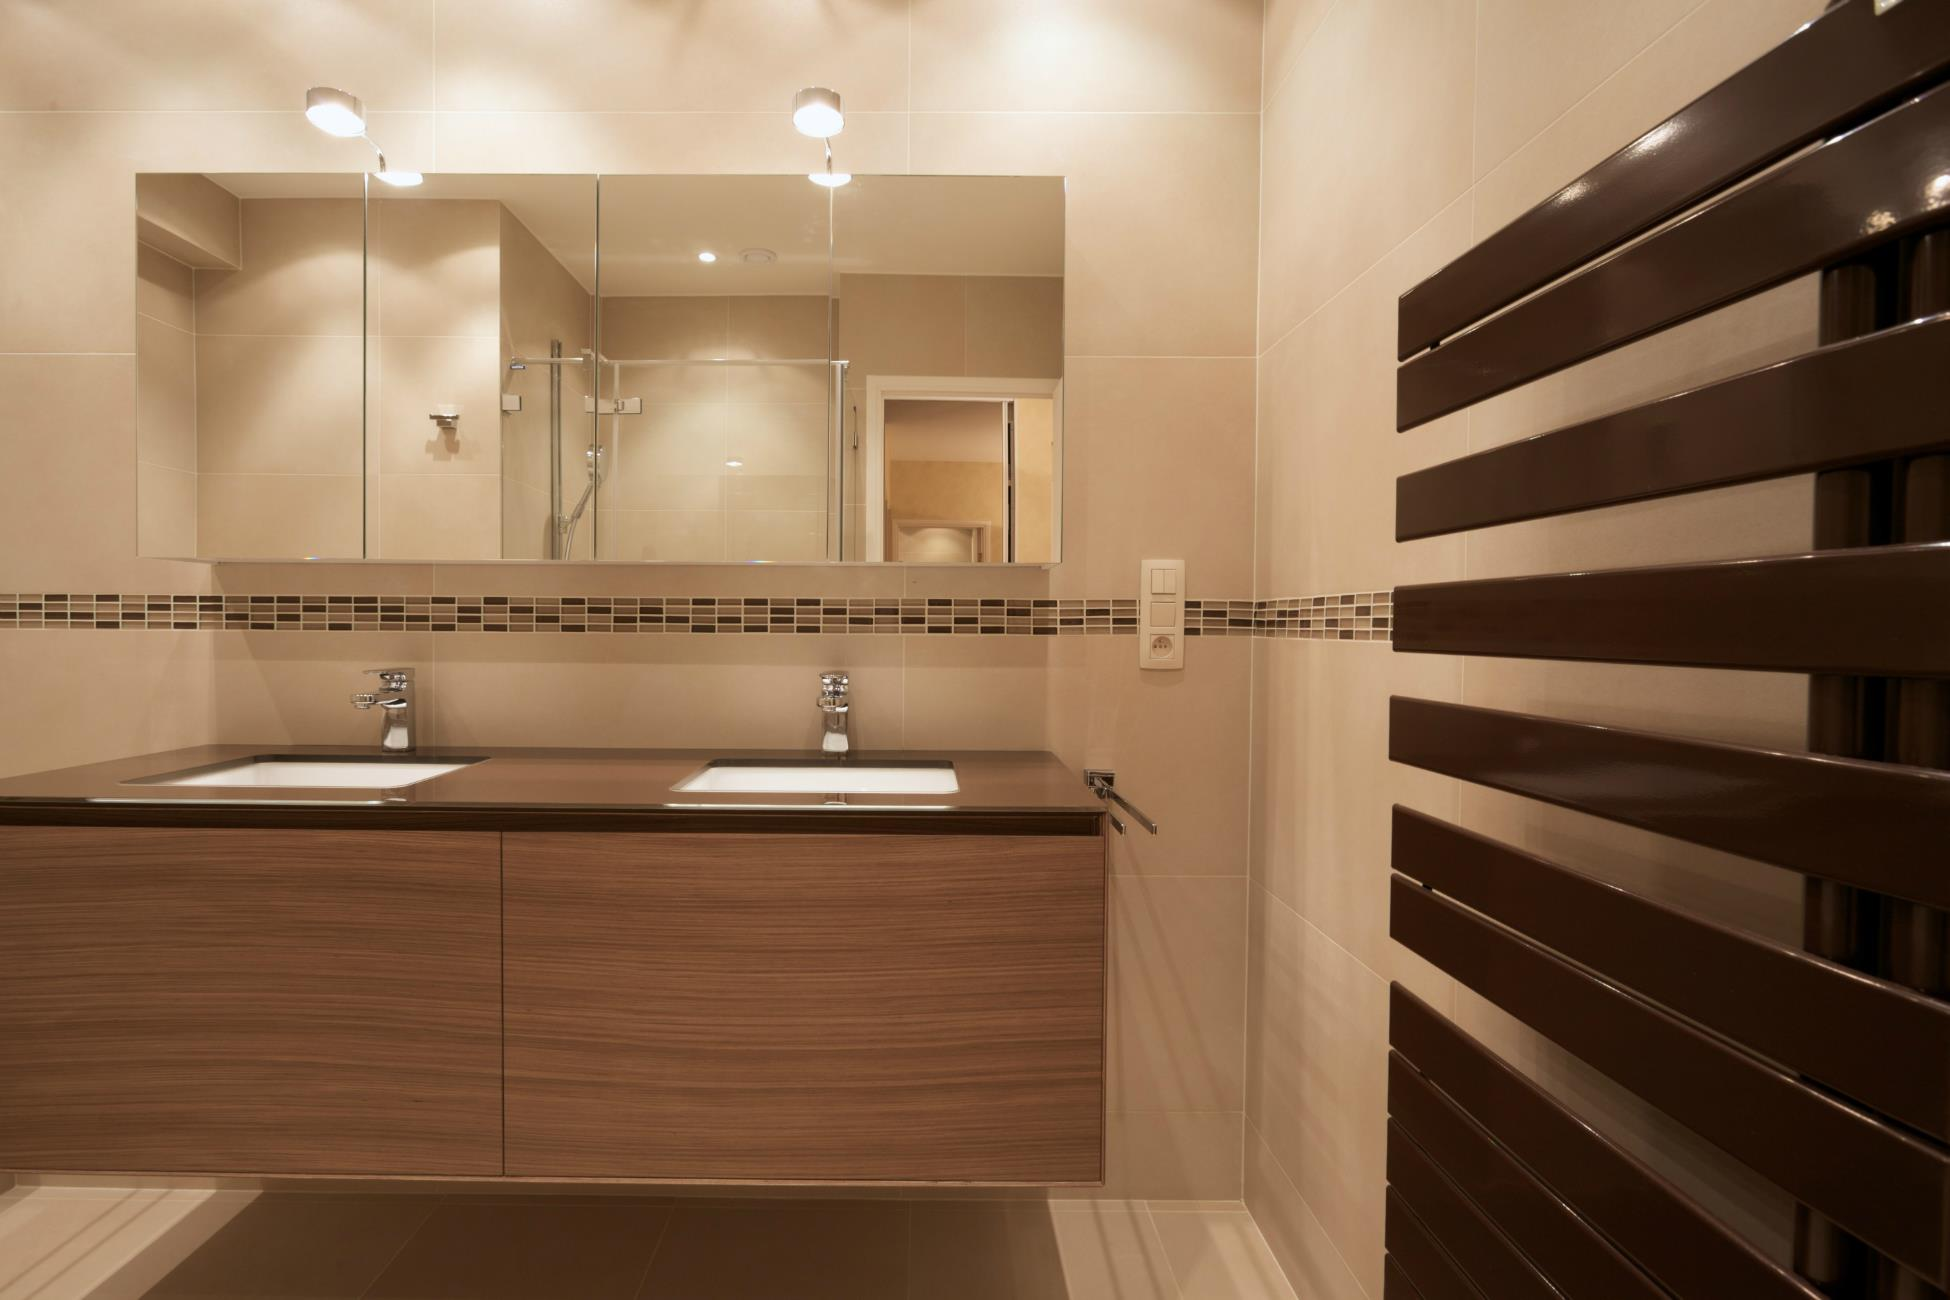 Salle de bain design r alisations renov management for Salle bain design